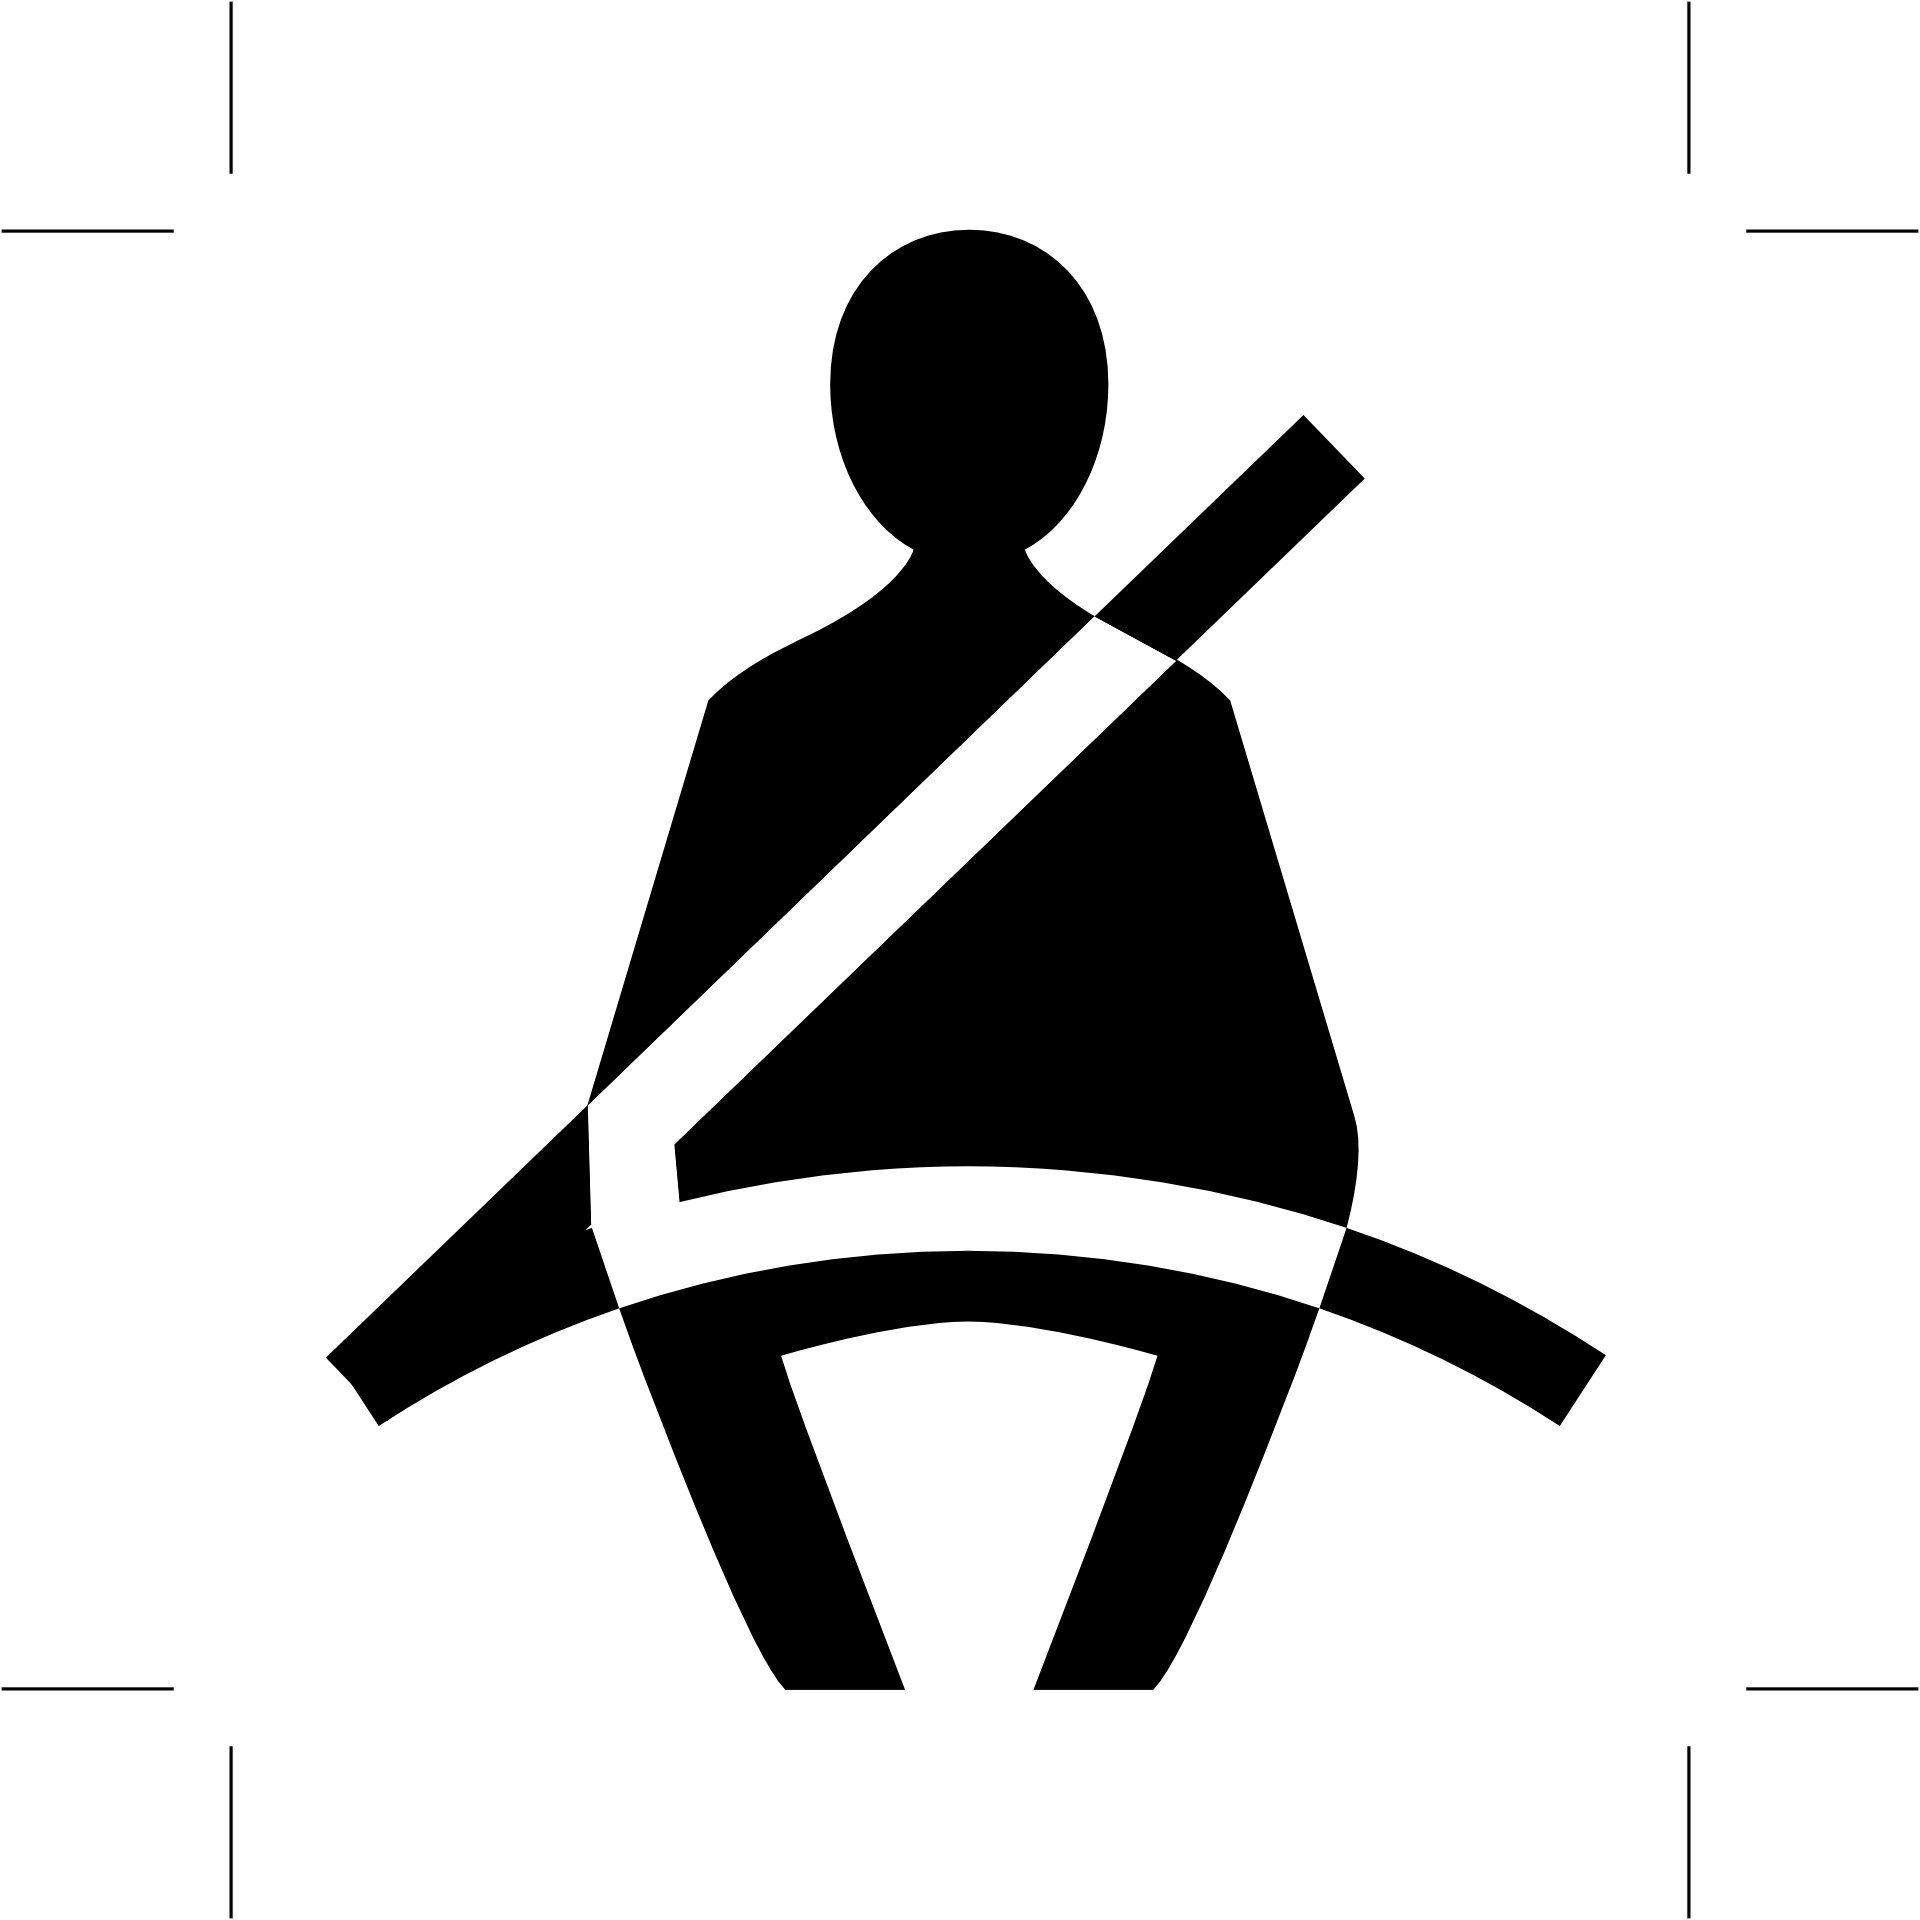 State crash data shows seat belt use critical in saving lives